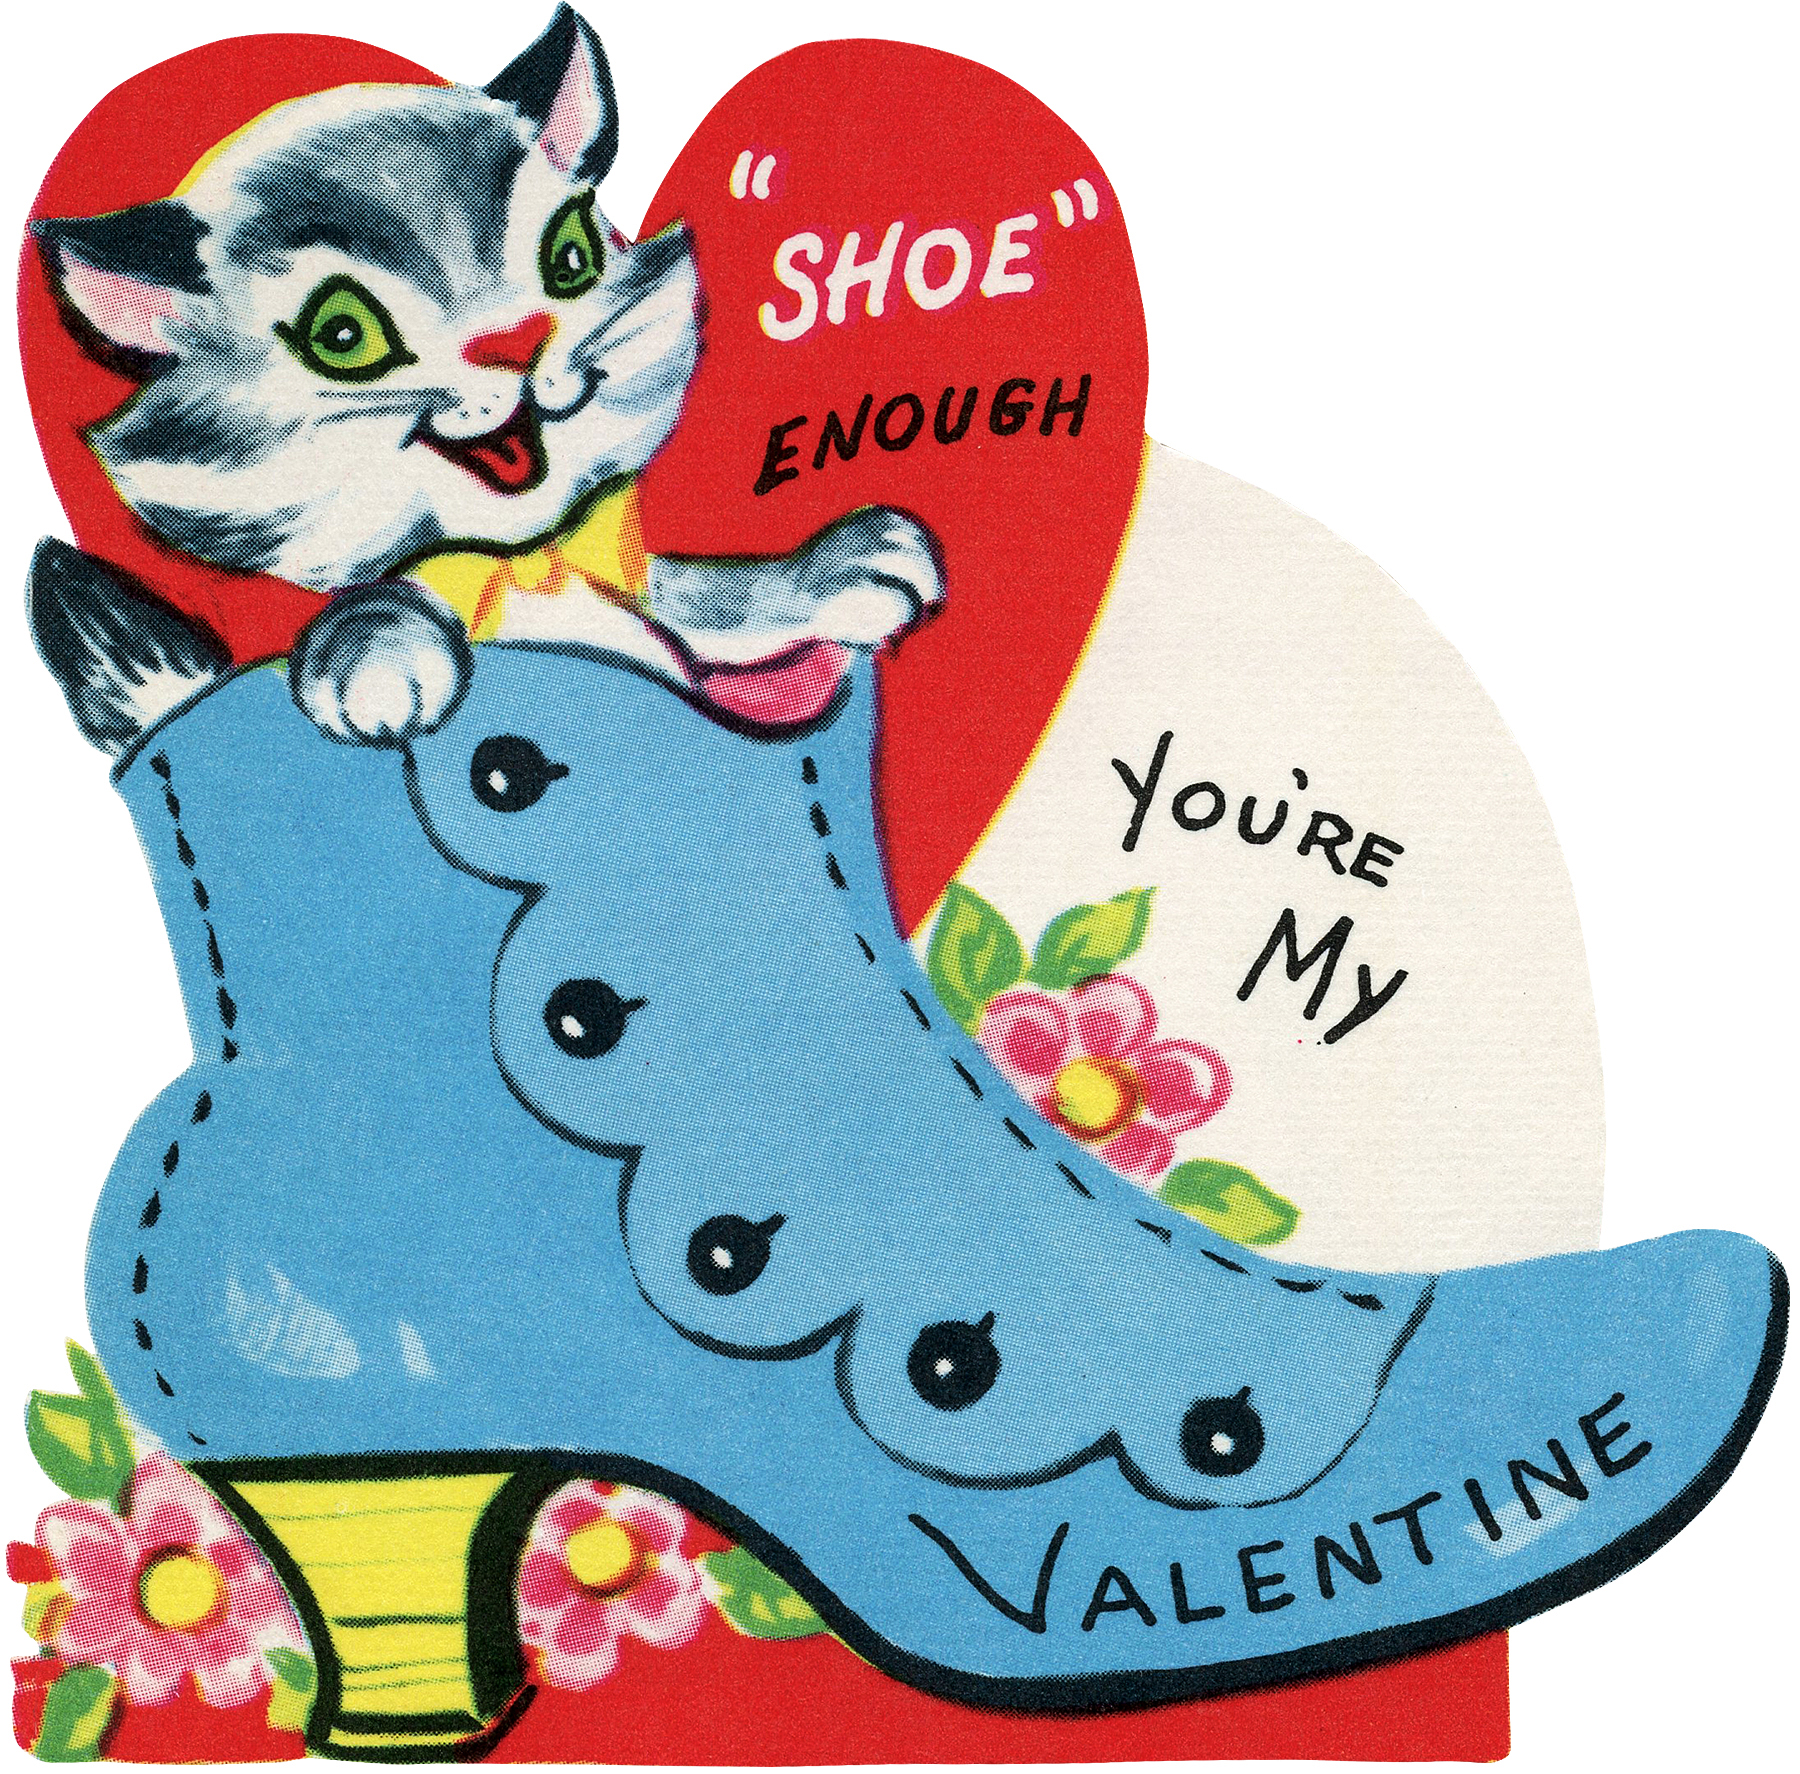 Retro Valentine Cat with Shoe